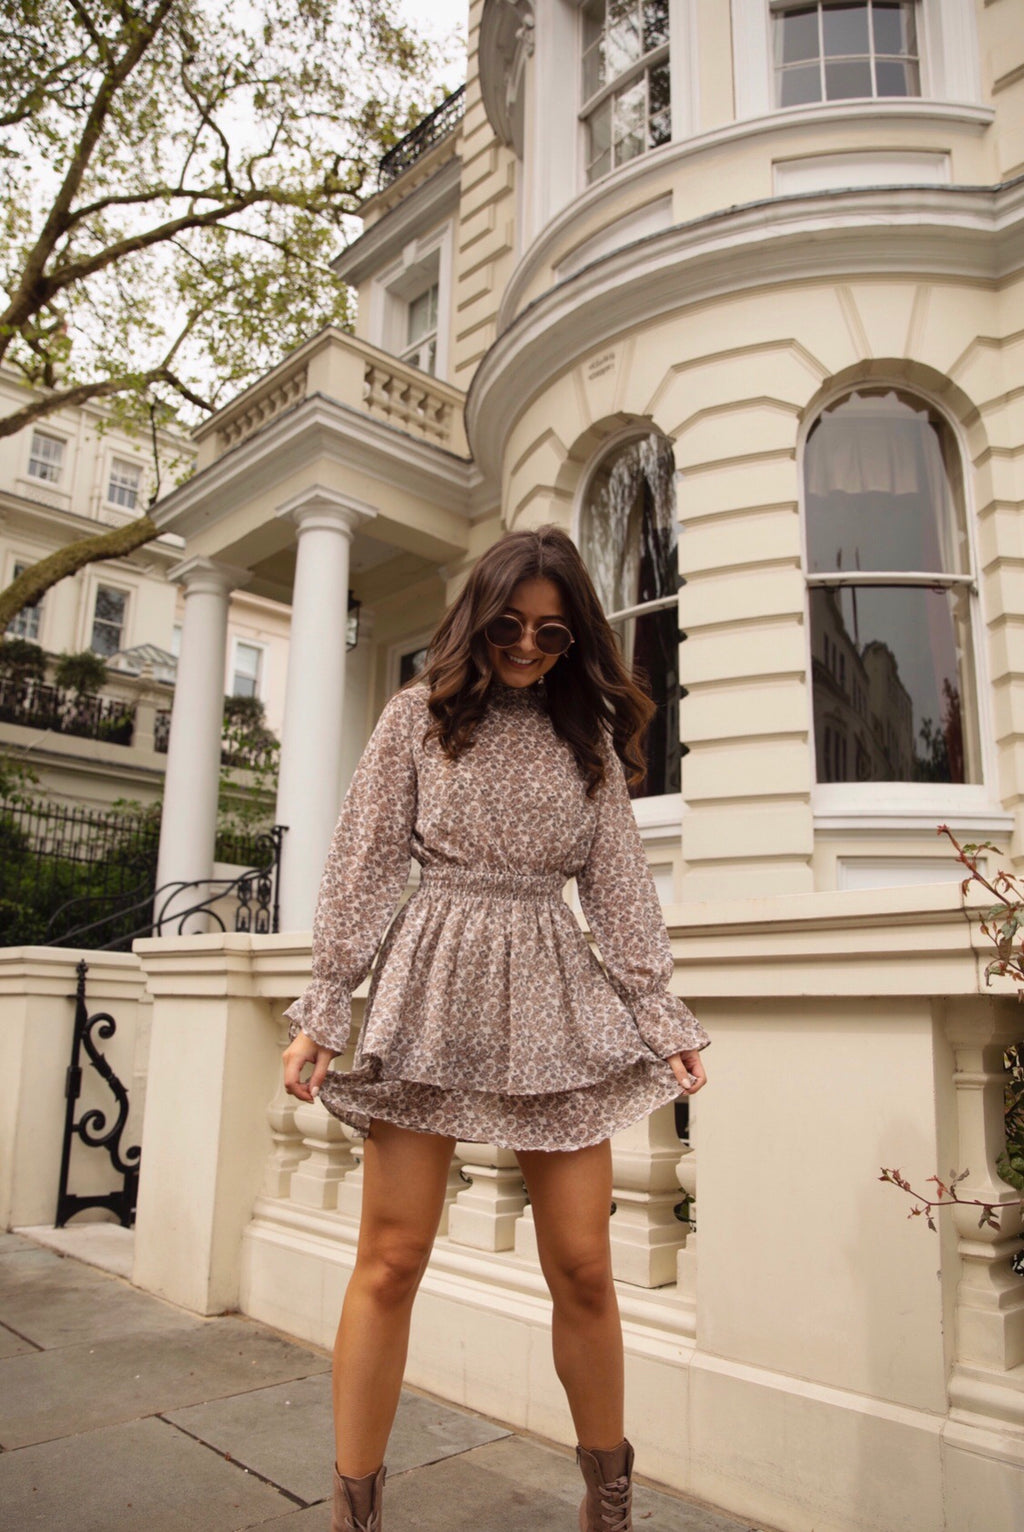 Daisy patterned Mini Dress